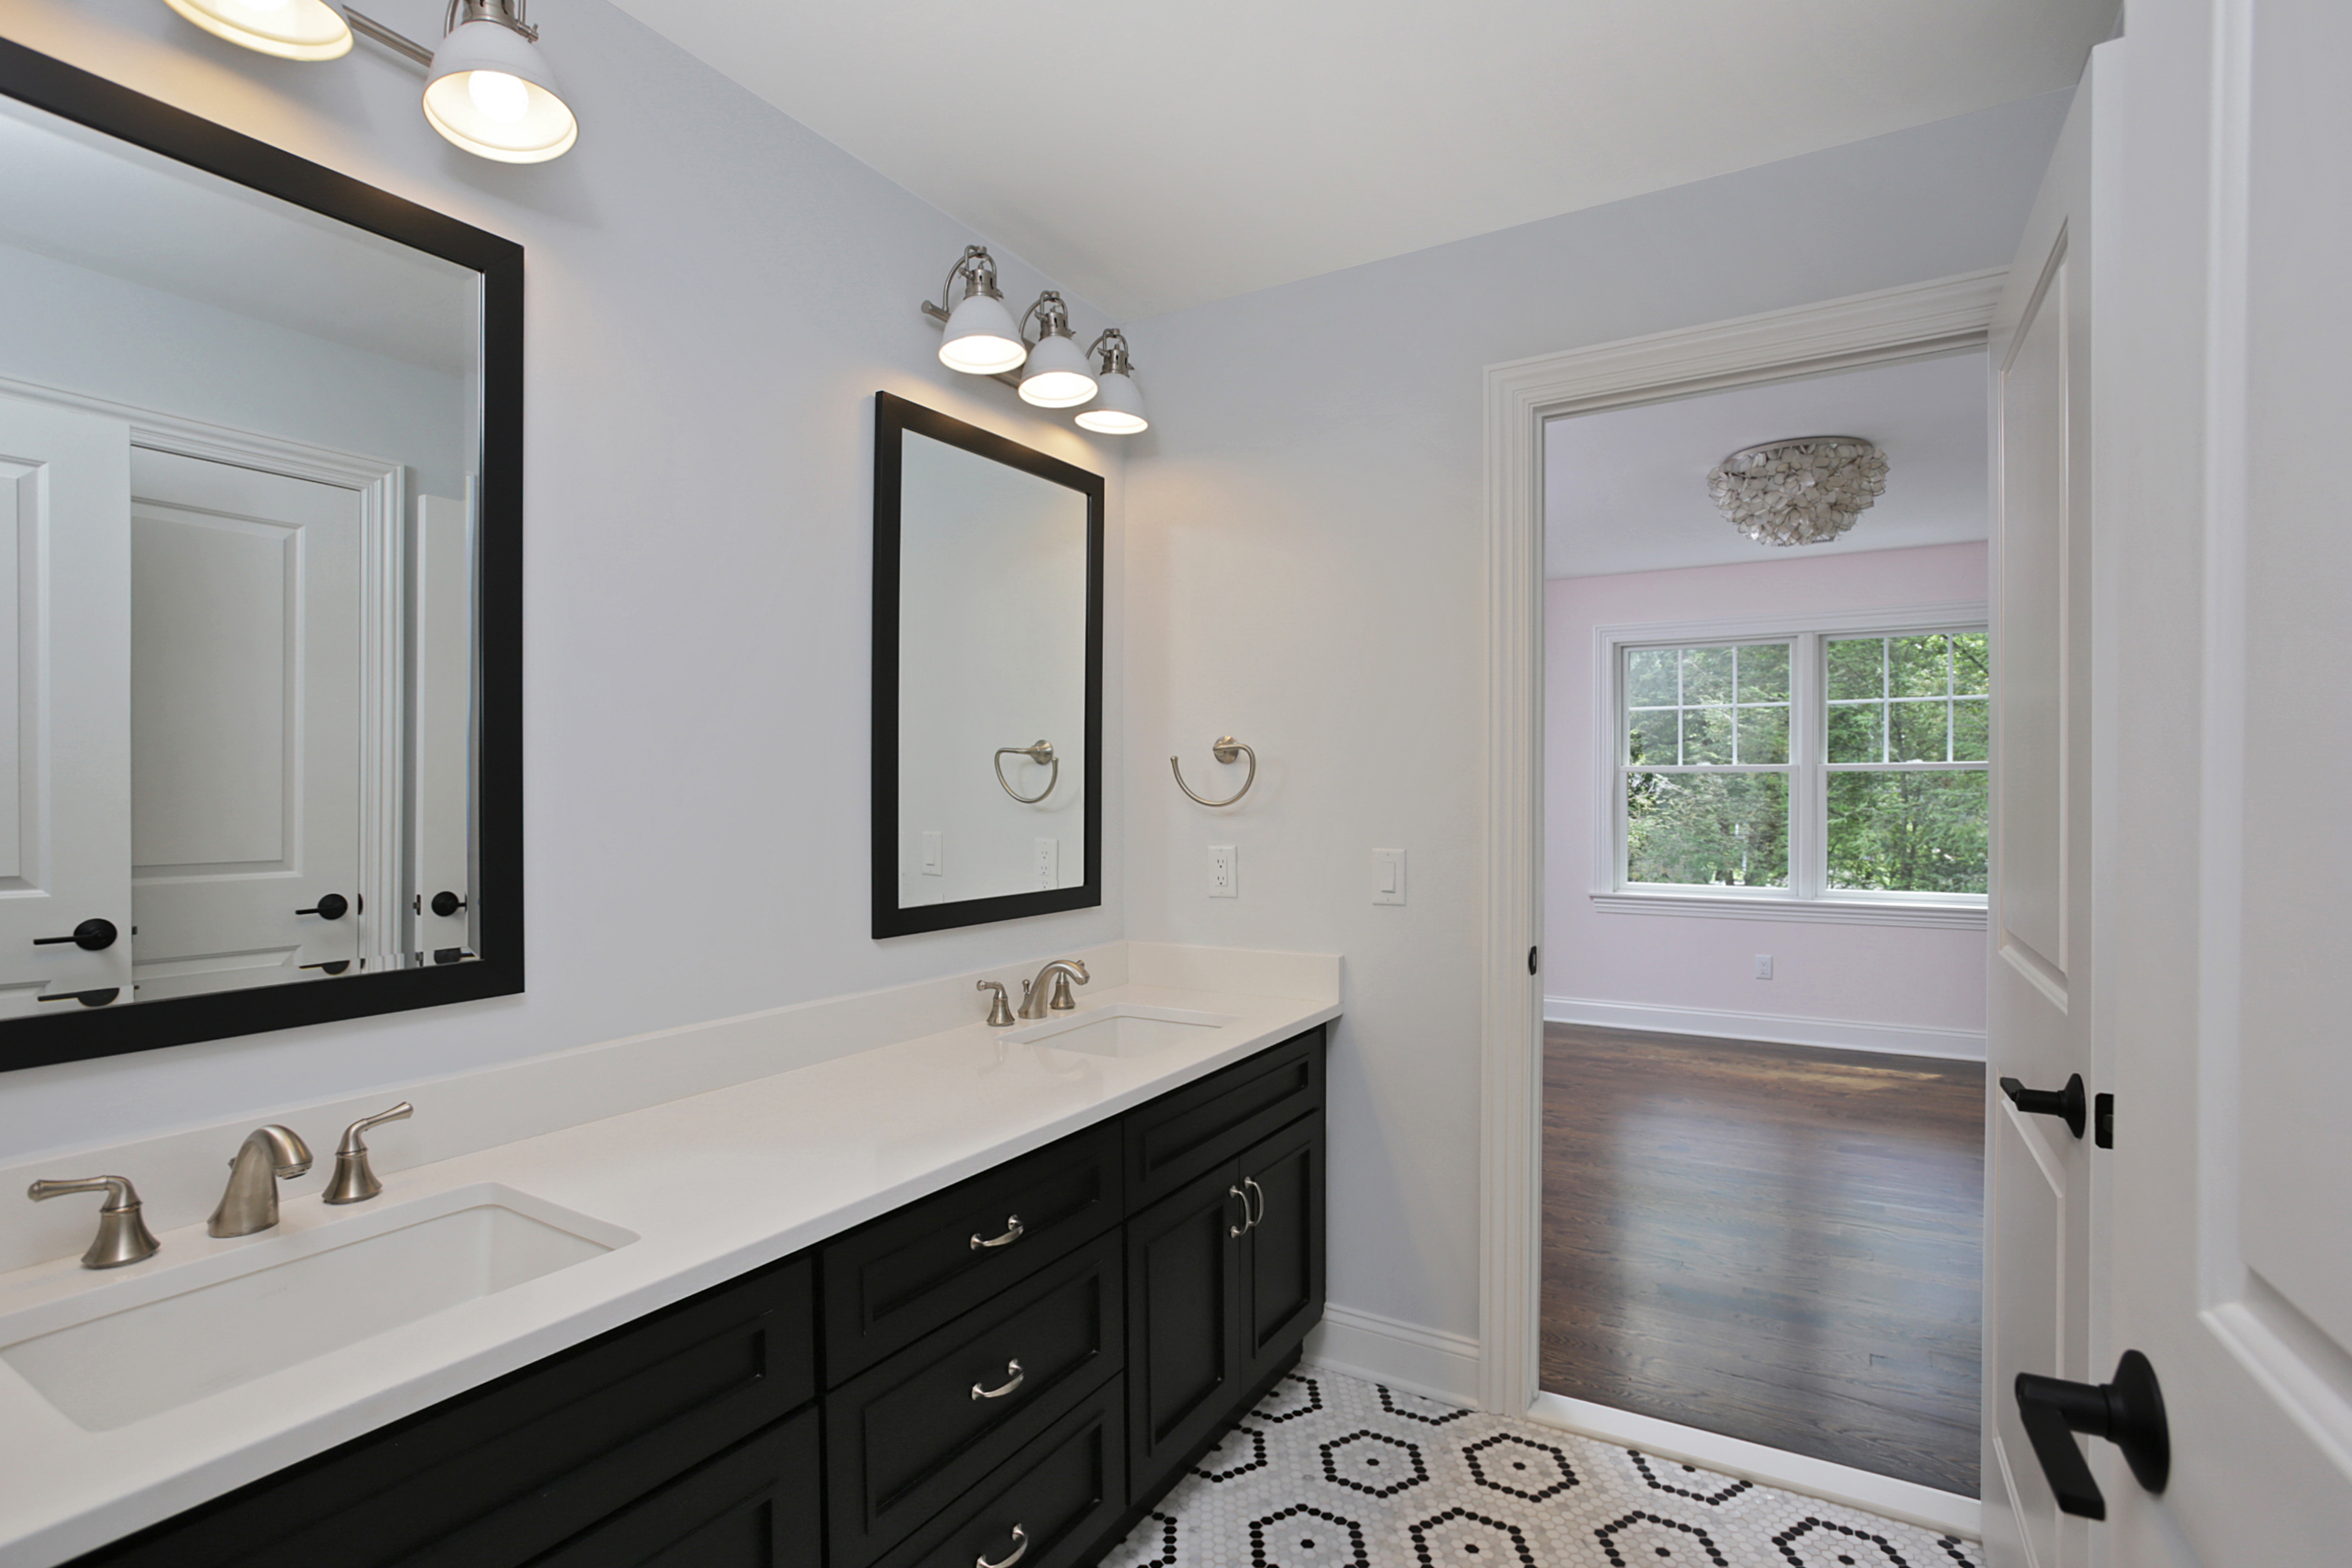 843 Nancy Way – J&J Bathroom